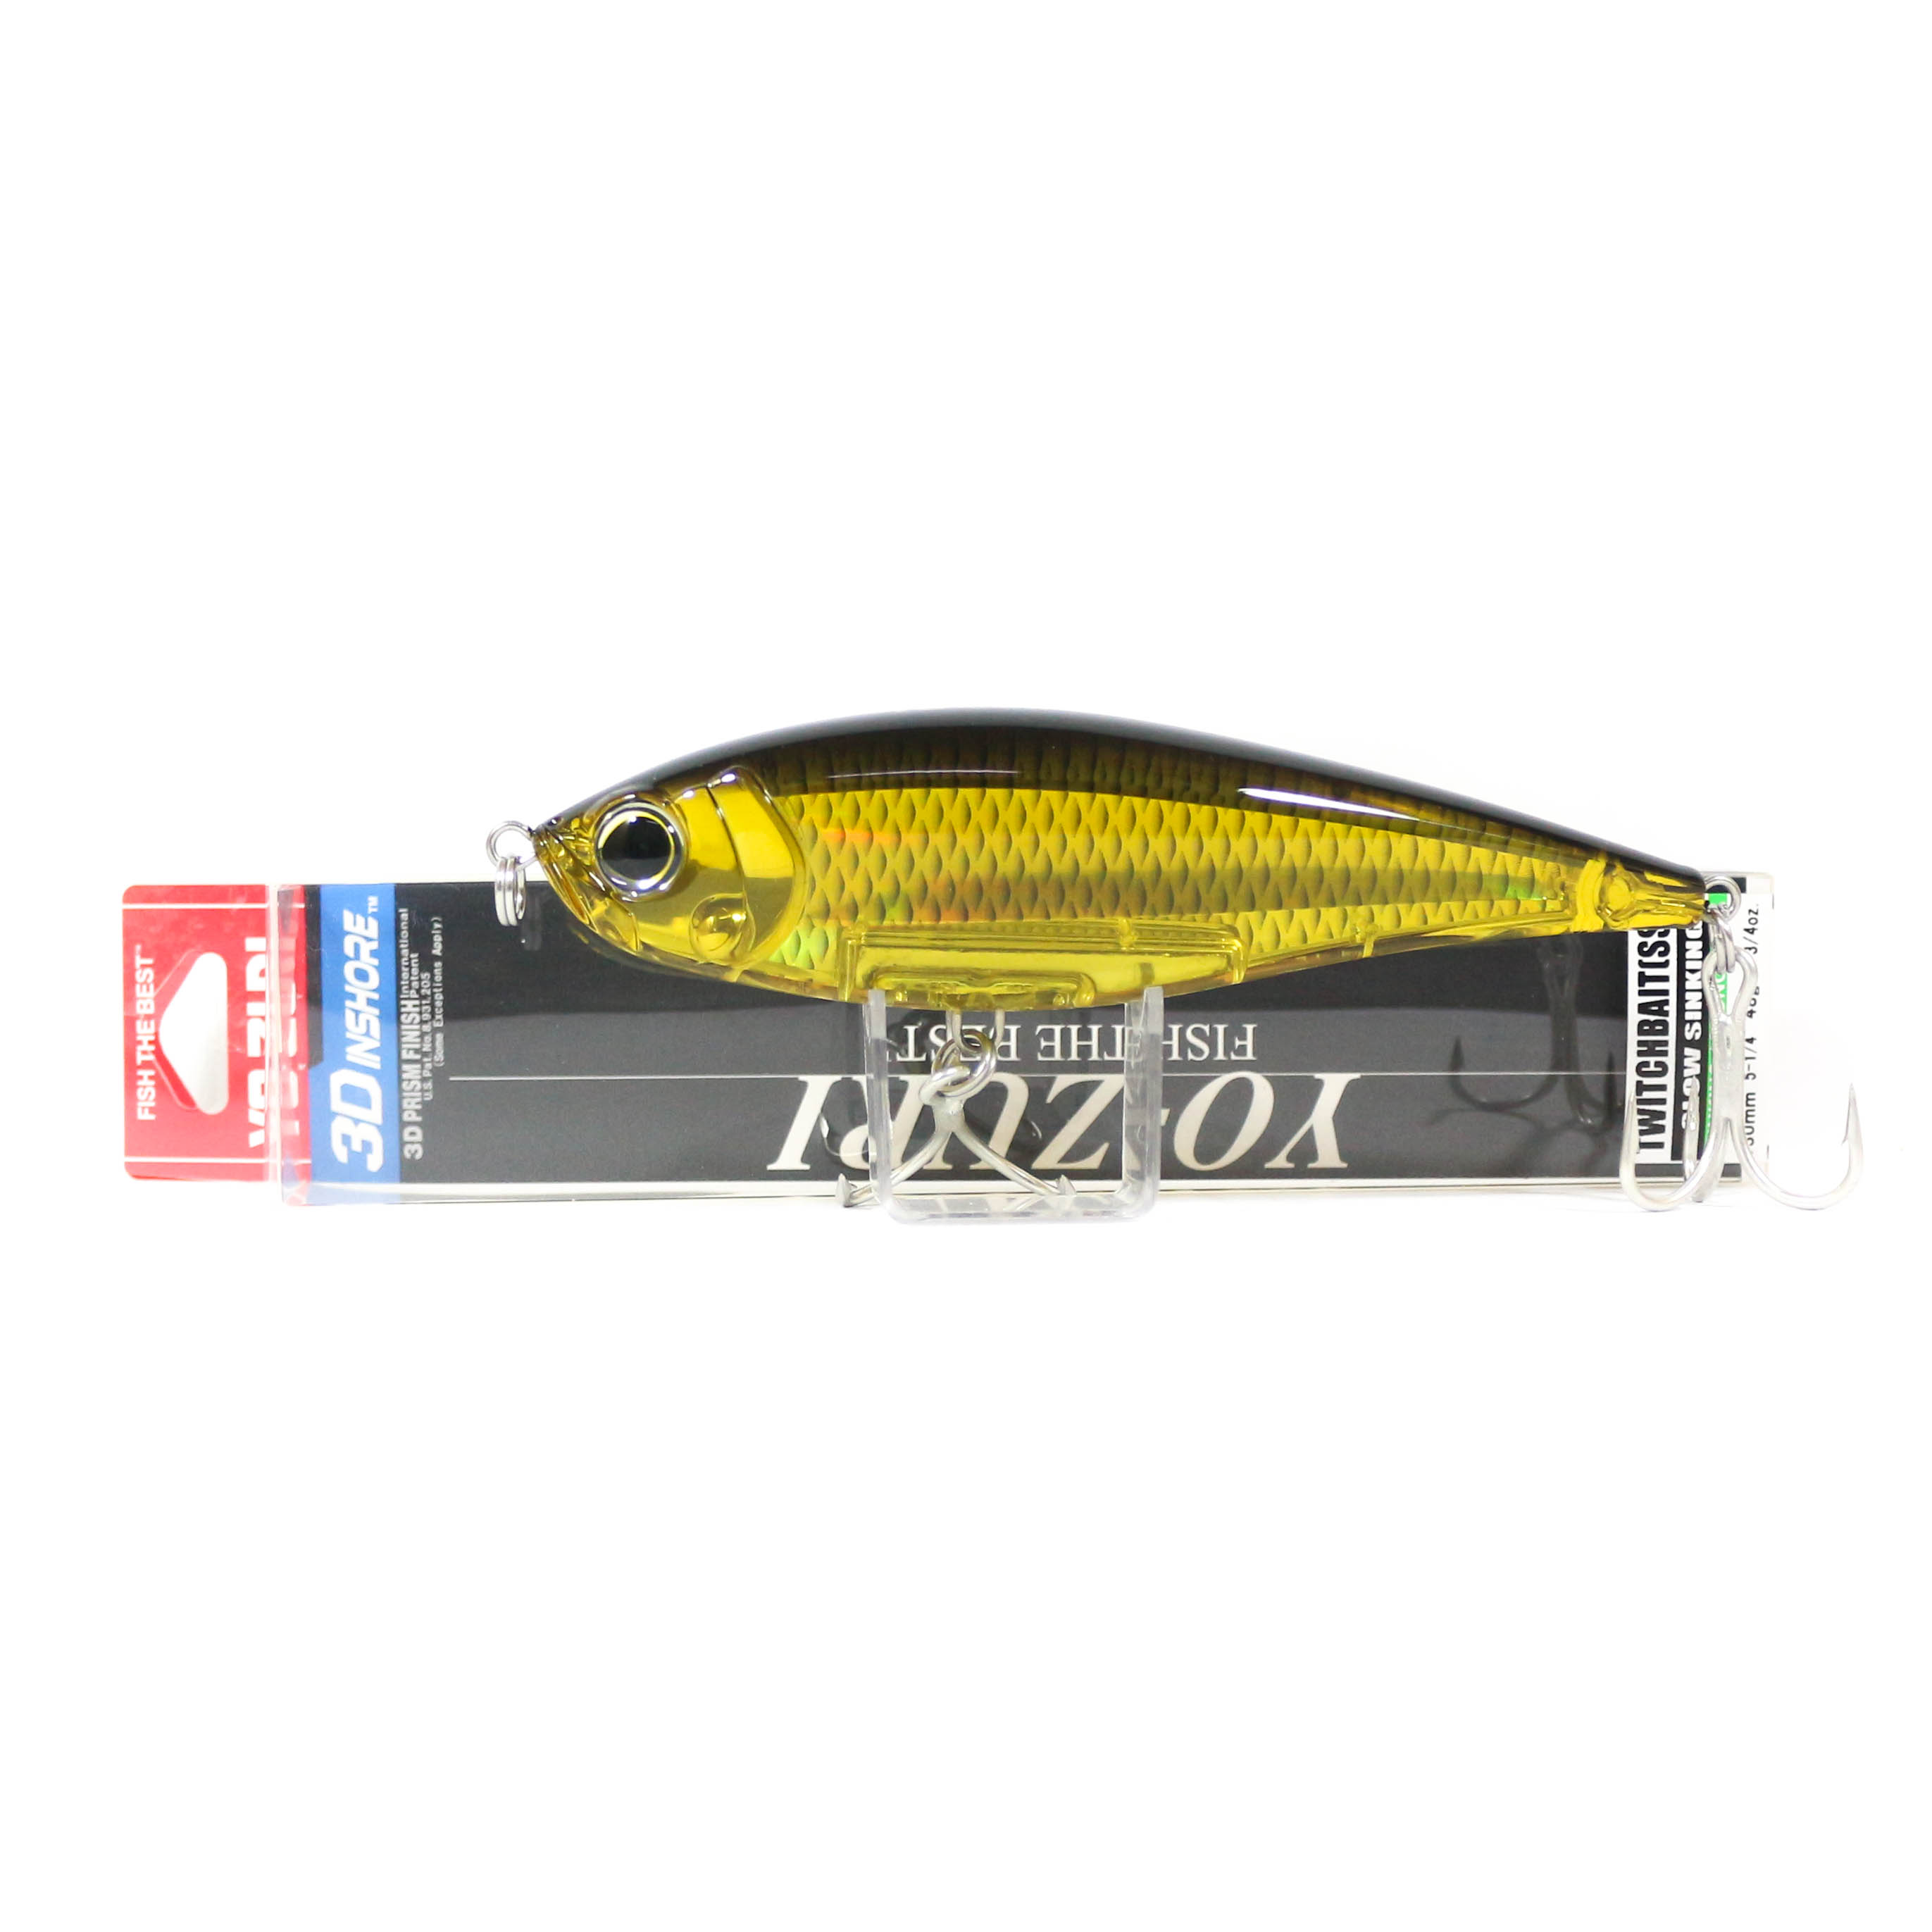 Yo Zuri Duel 3D Inshore Twitchbait 130SS Slow Sinking Lure R1349-HGBL (9489)